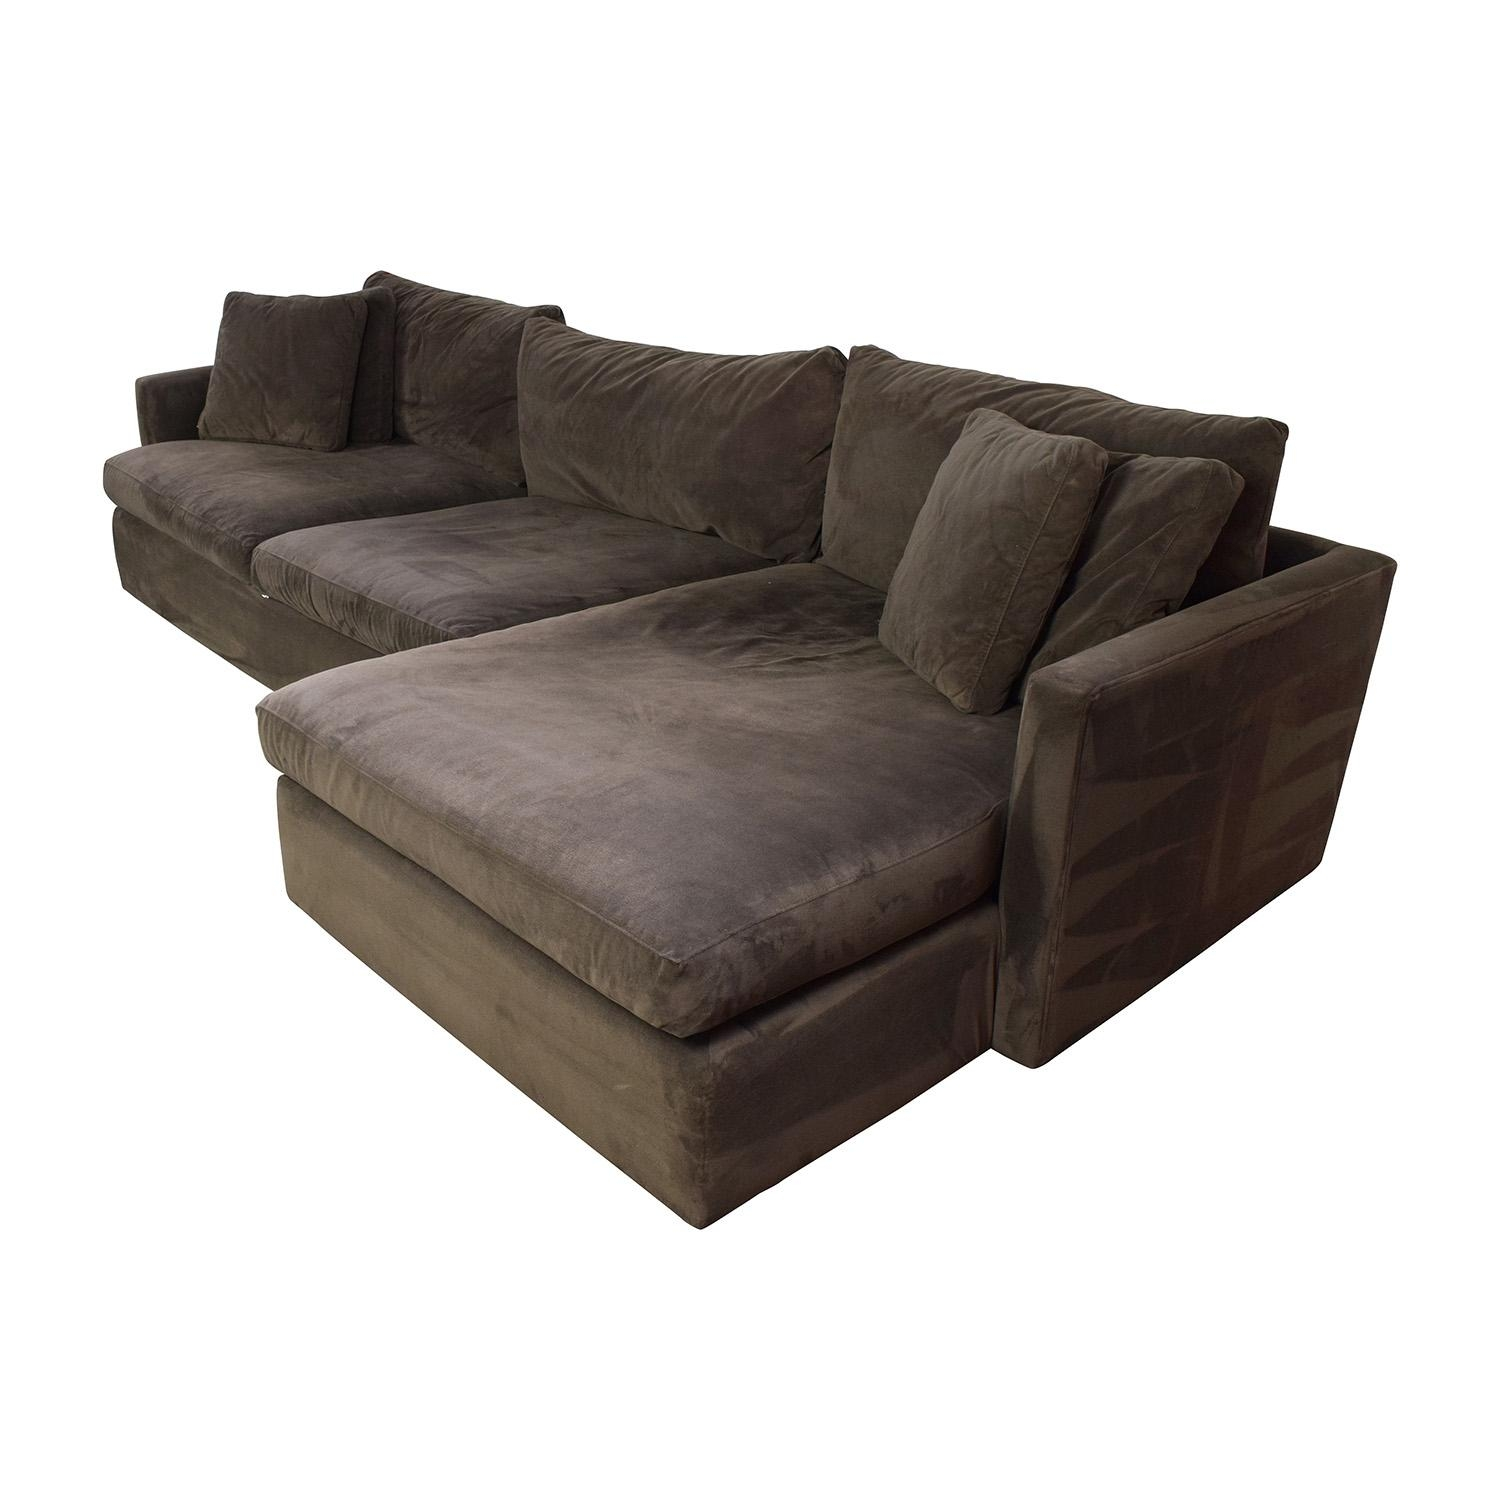 89% Off - Crate And Barrel Crate & Barrel Brown Left Arm Sectional within Sectional Crate and Barrel